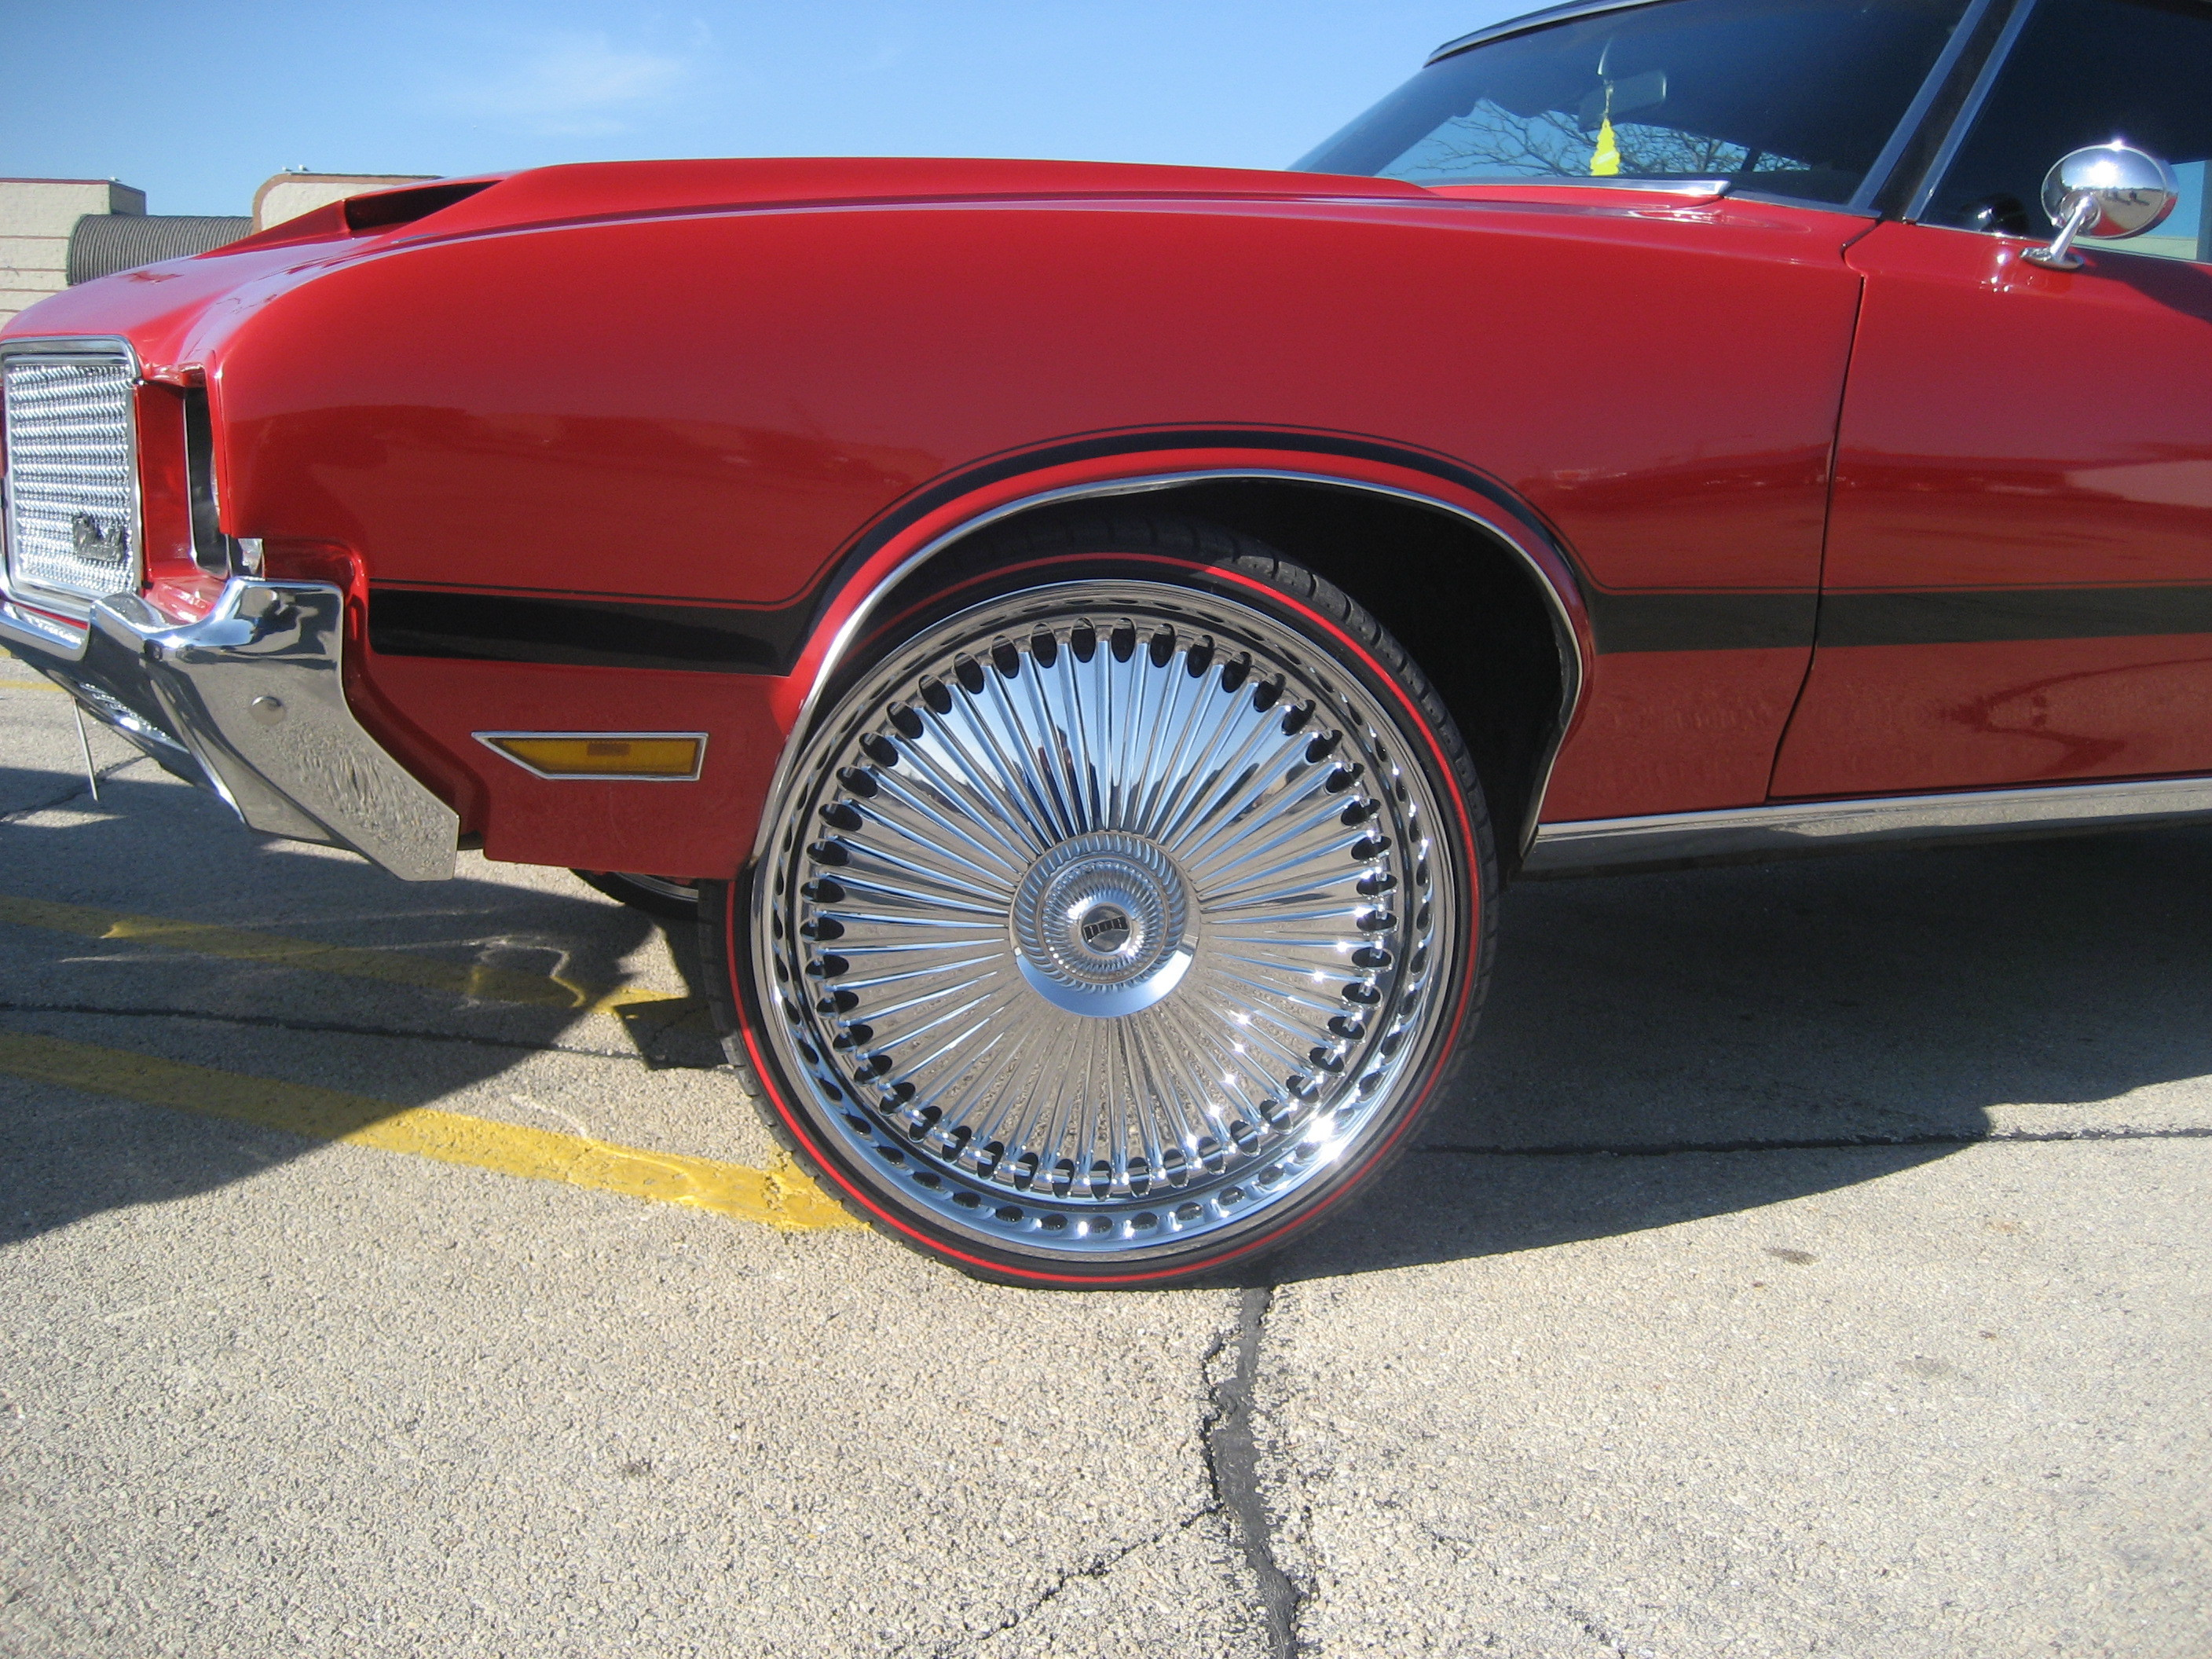 CHITOWNSILLEST 1985 Chevrolet Caprice 11517703